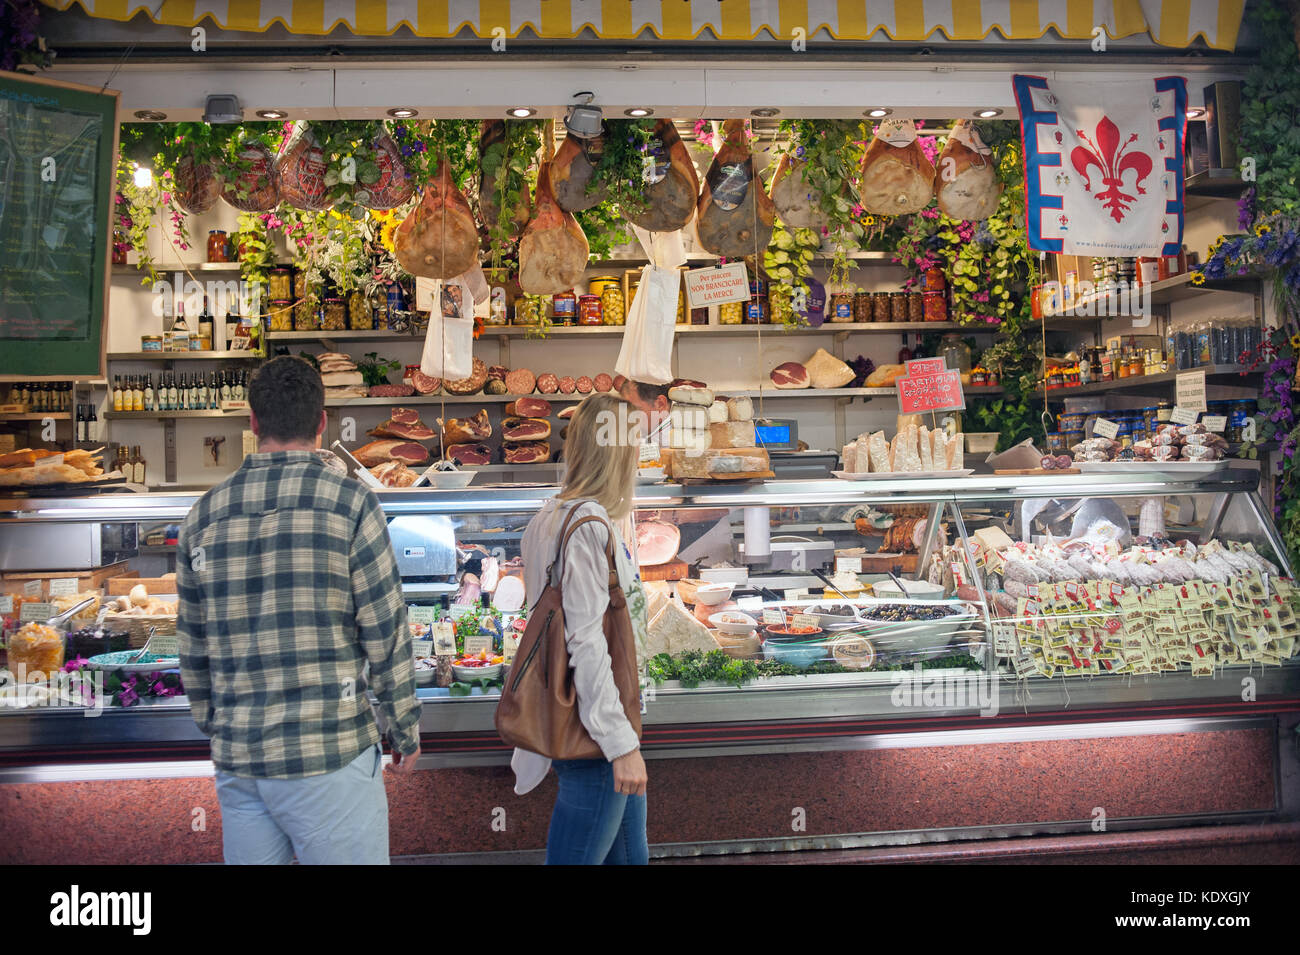 Mercato Centrale in Florence, Italy - Stock Image